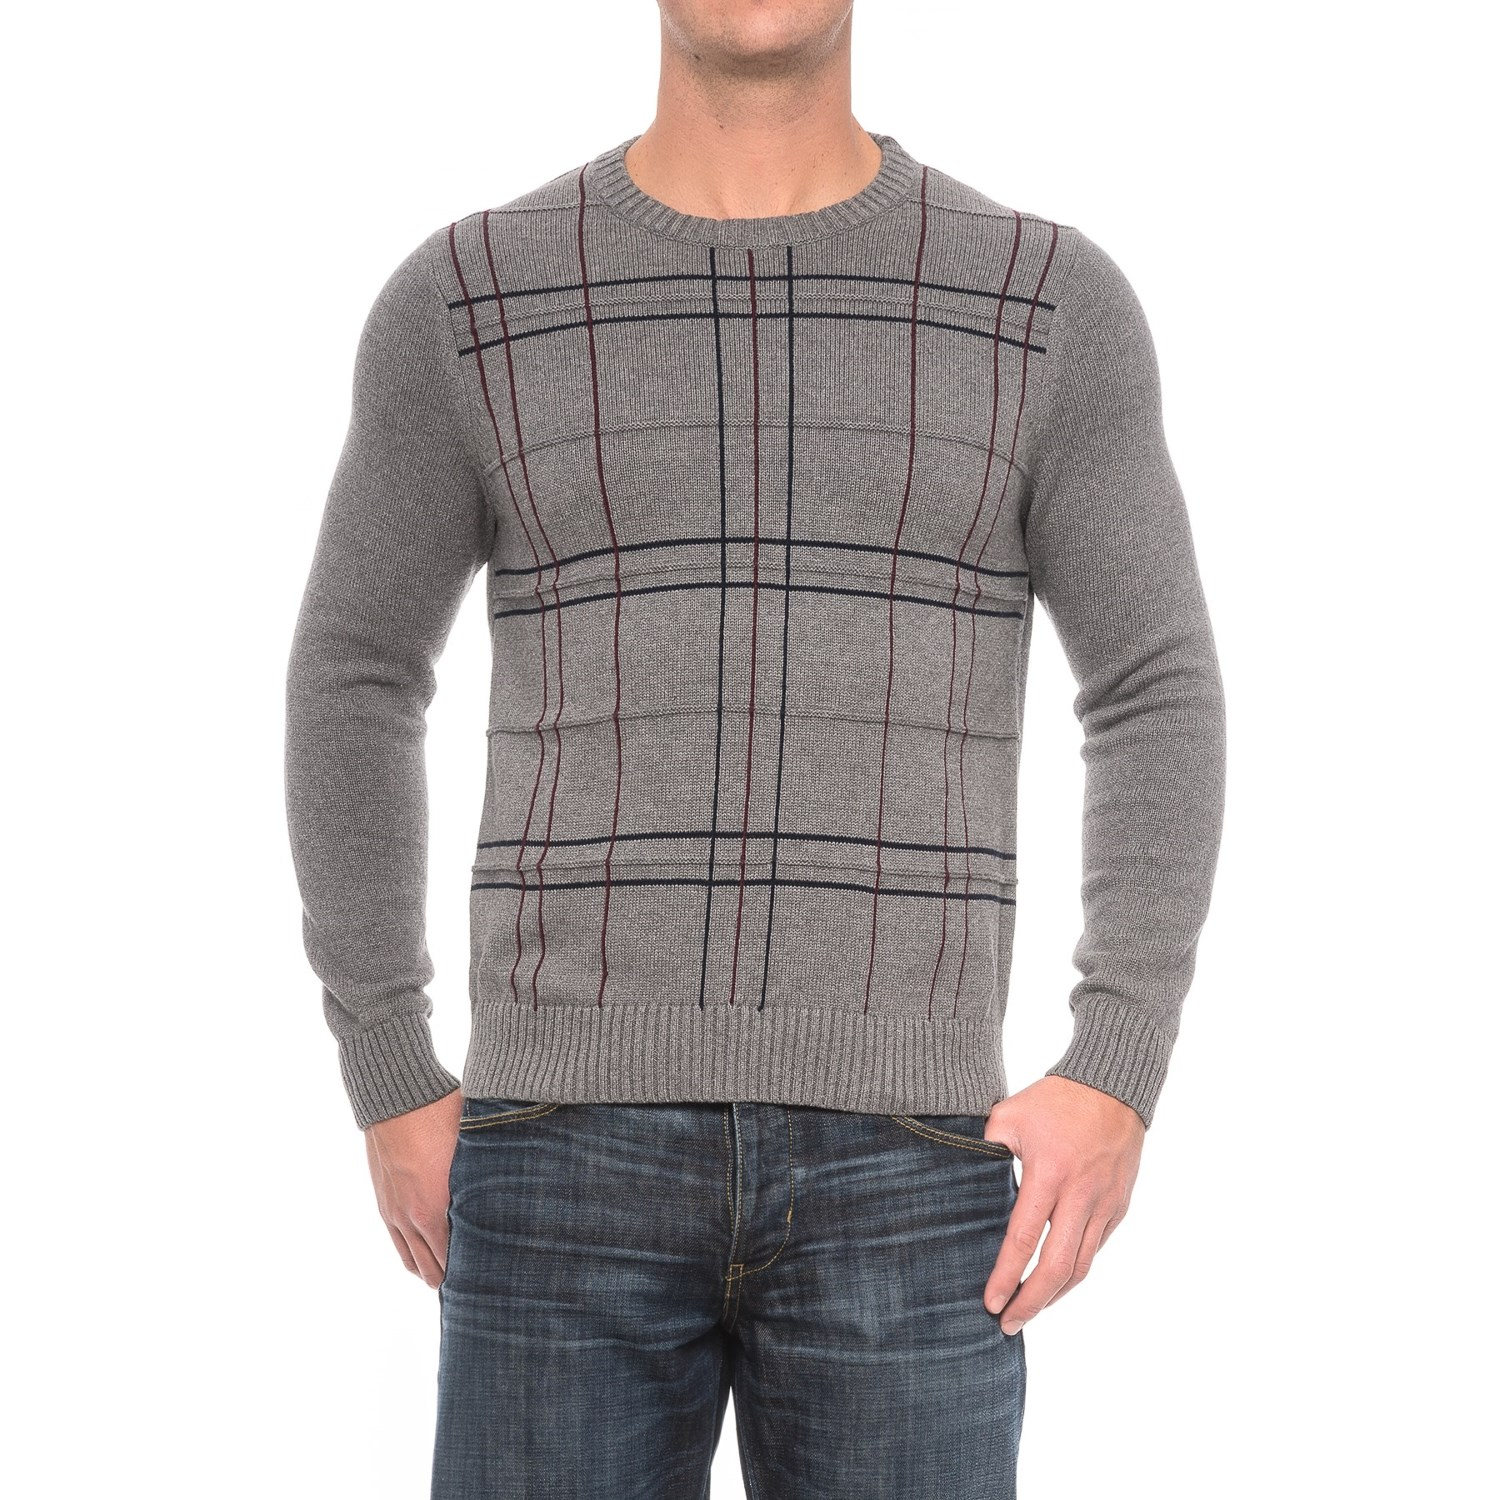 Patterned Crew Neck Sweater (For Men) - Save 65%